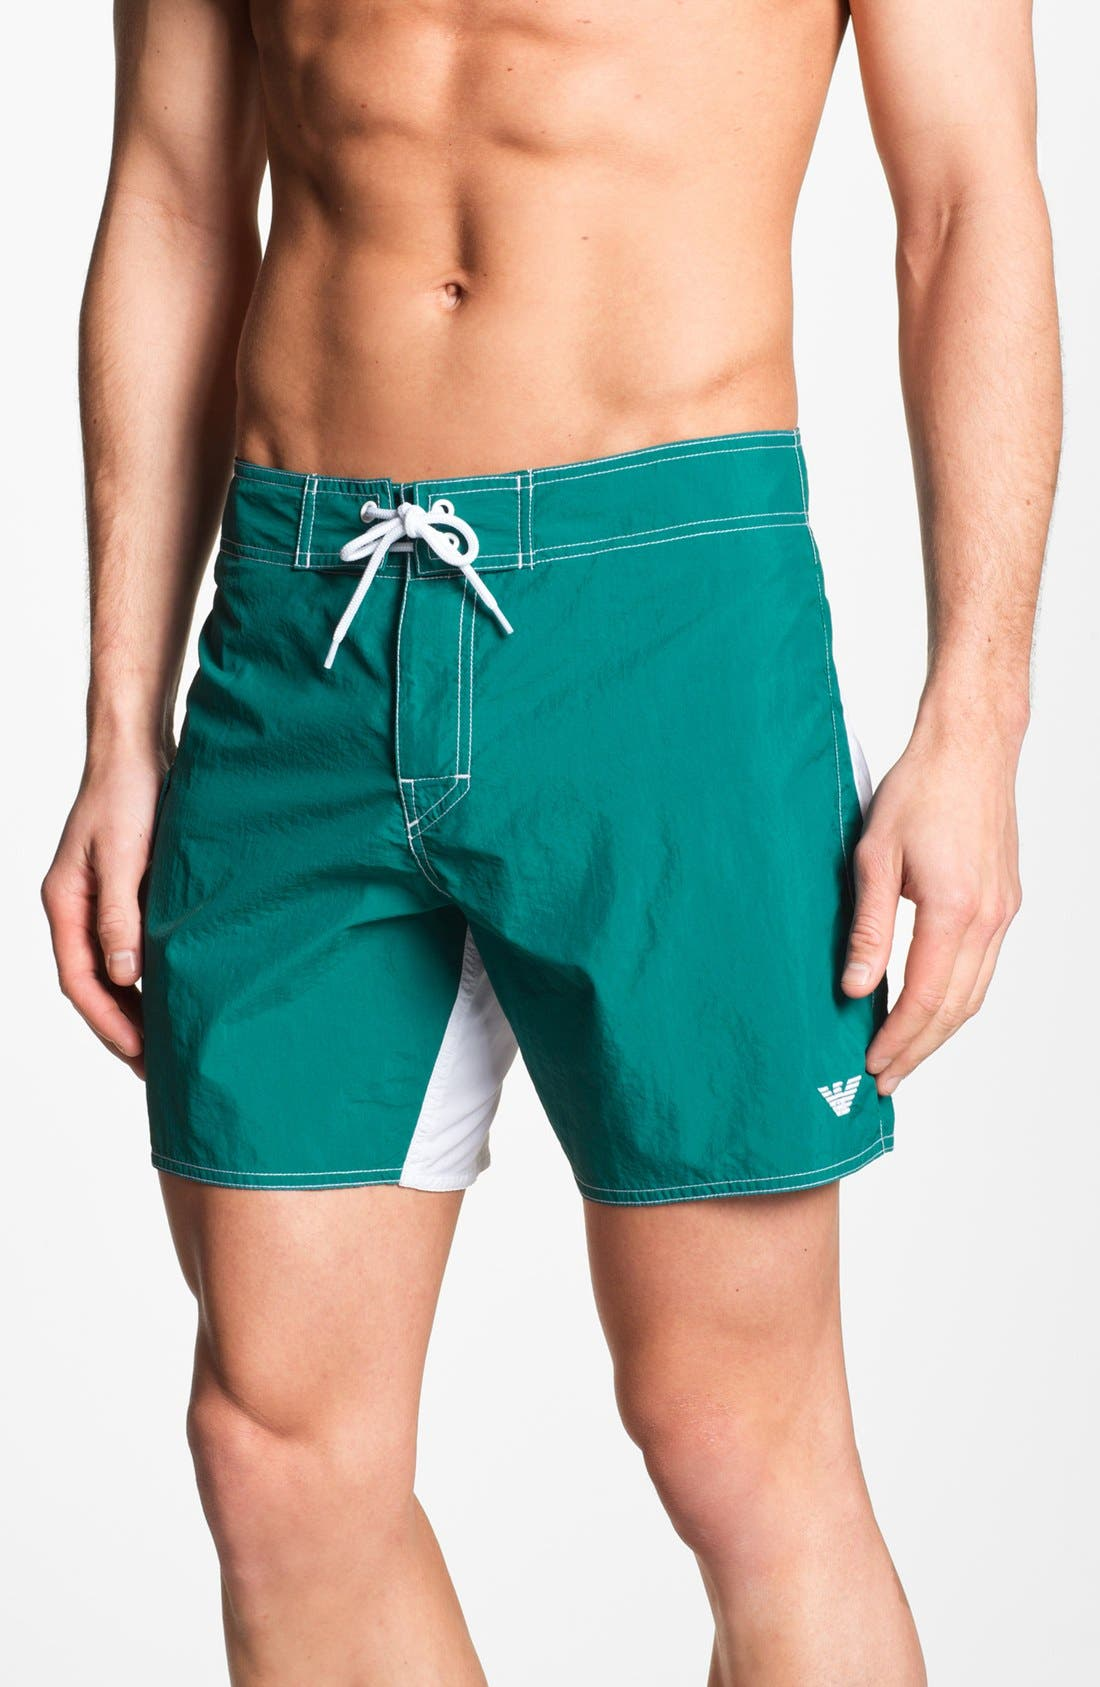 Alternate Image 1 Selected - Emporio Armani Board Shorts